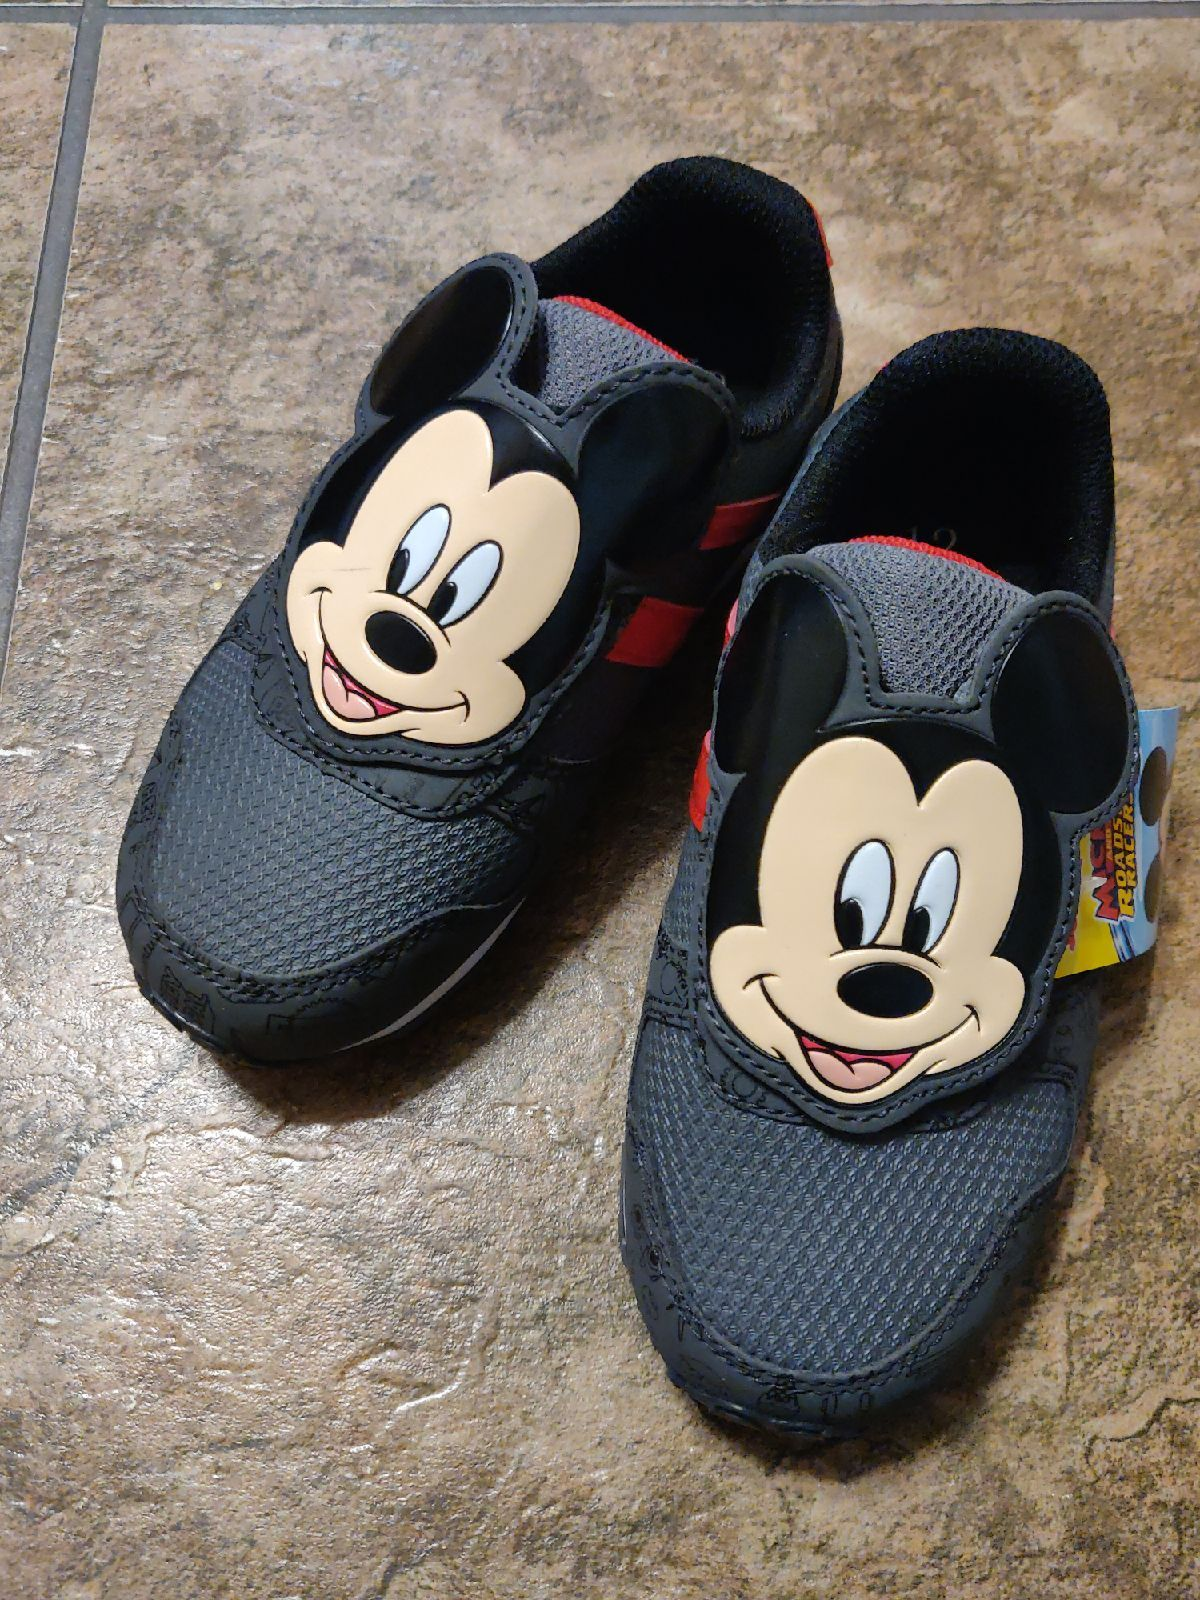 Size 12 Mickey Mouse Sneakers Baby Shoes Sneakers Mickey Mouse